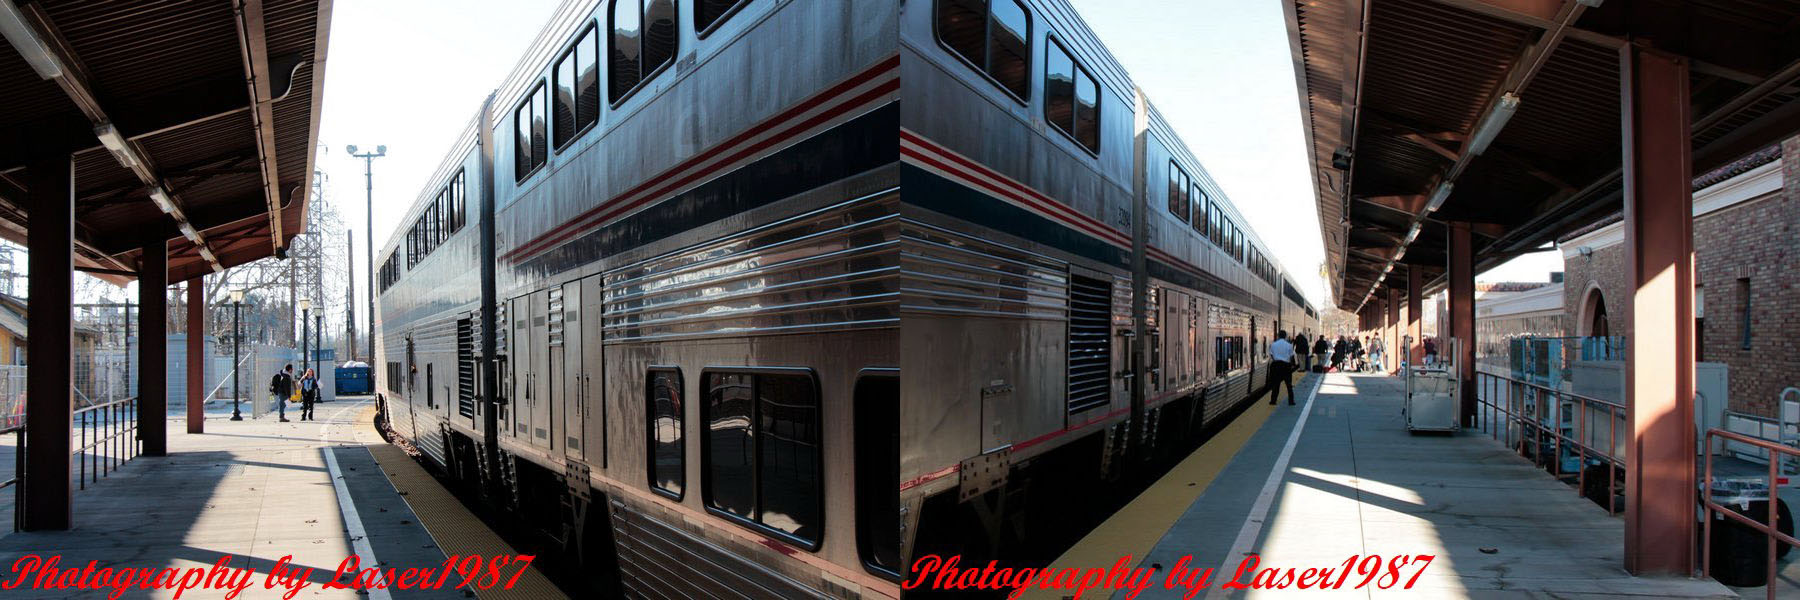 Amtrak 11 Coast Starlight SEA-LAX 海岸星光号体验